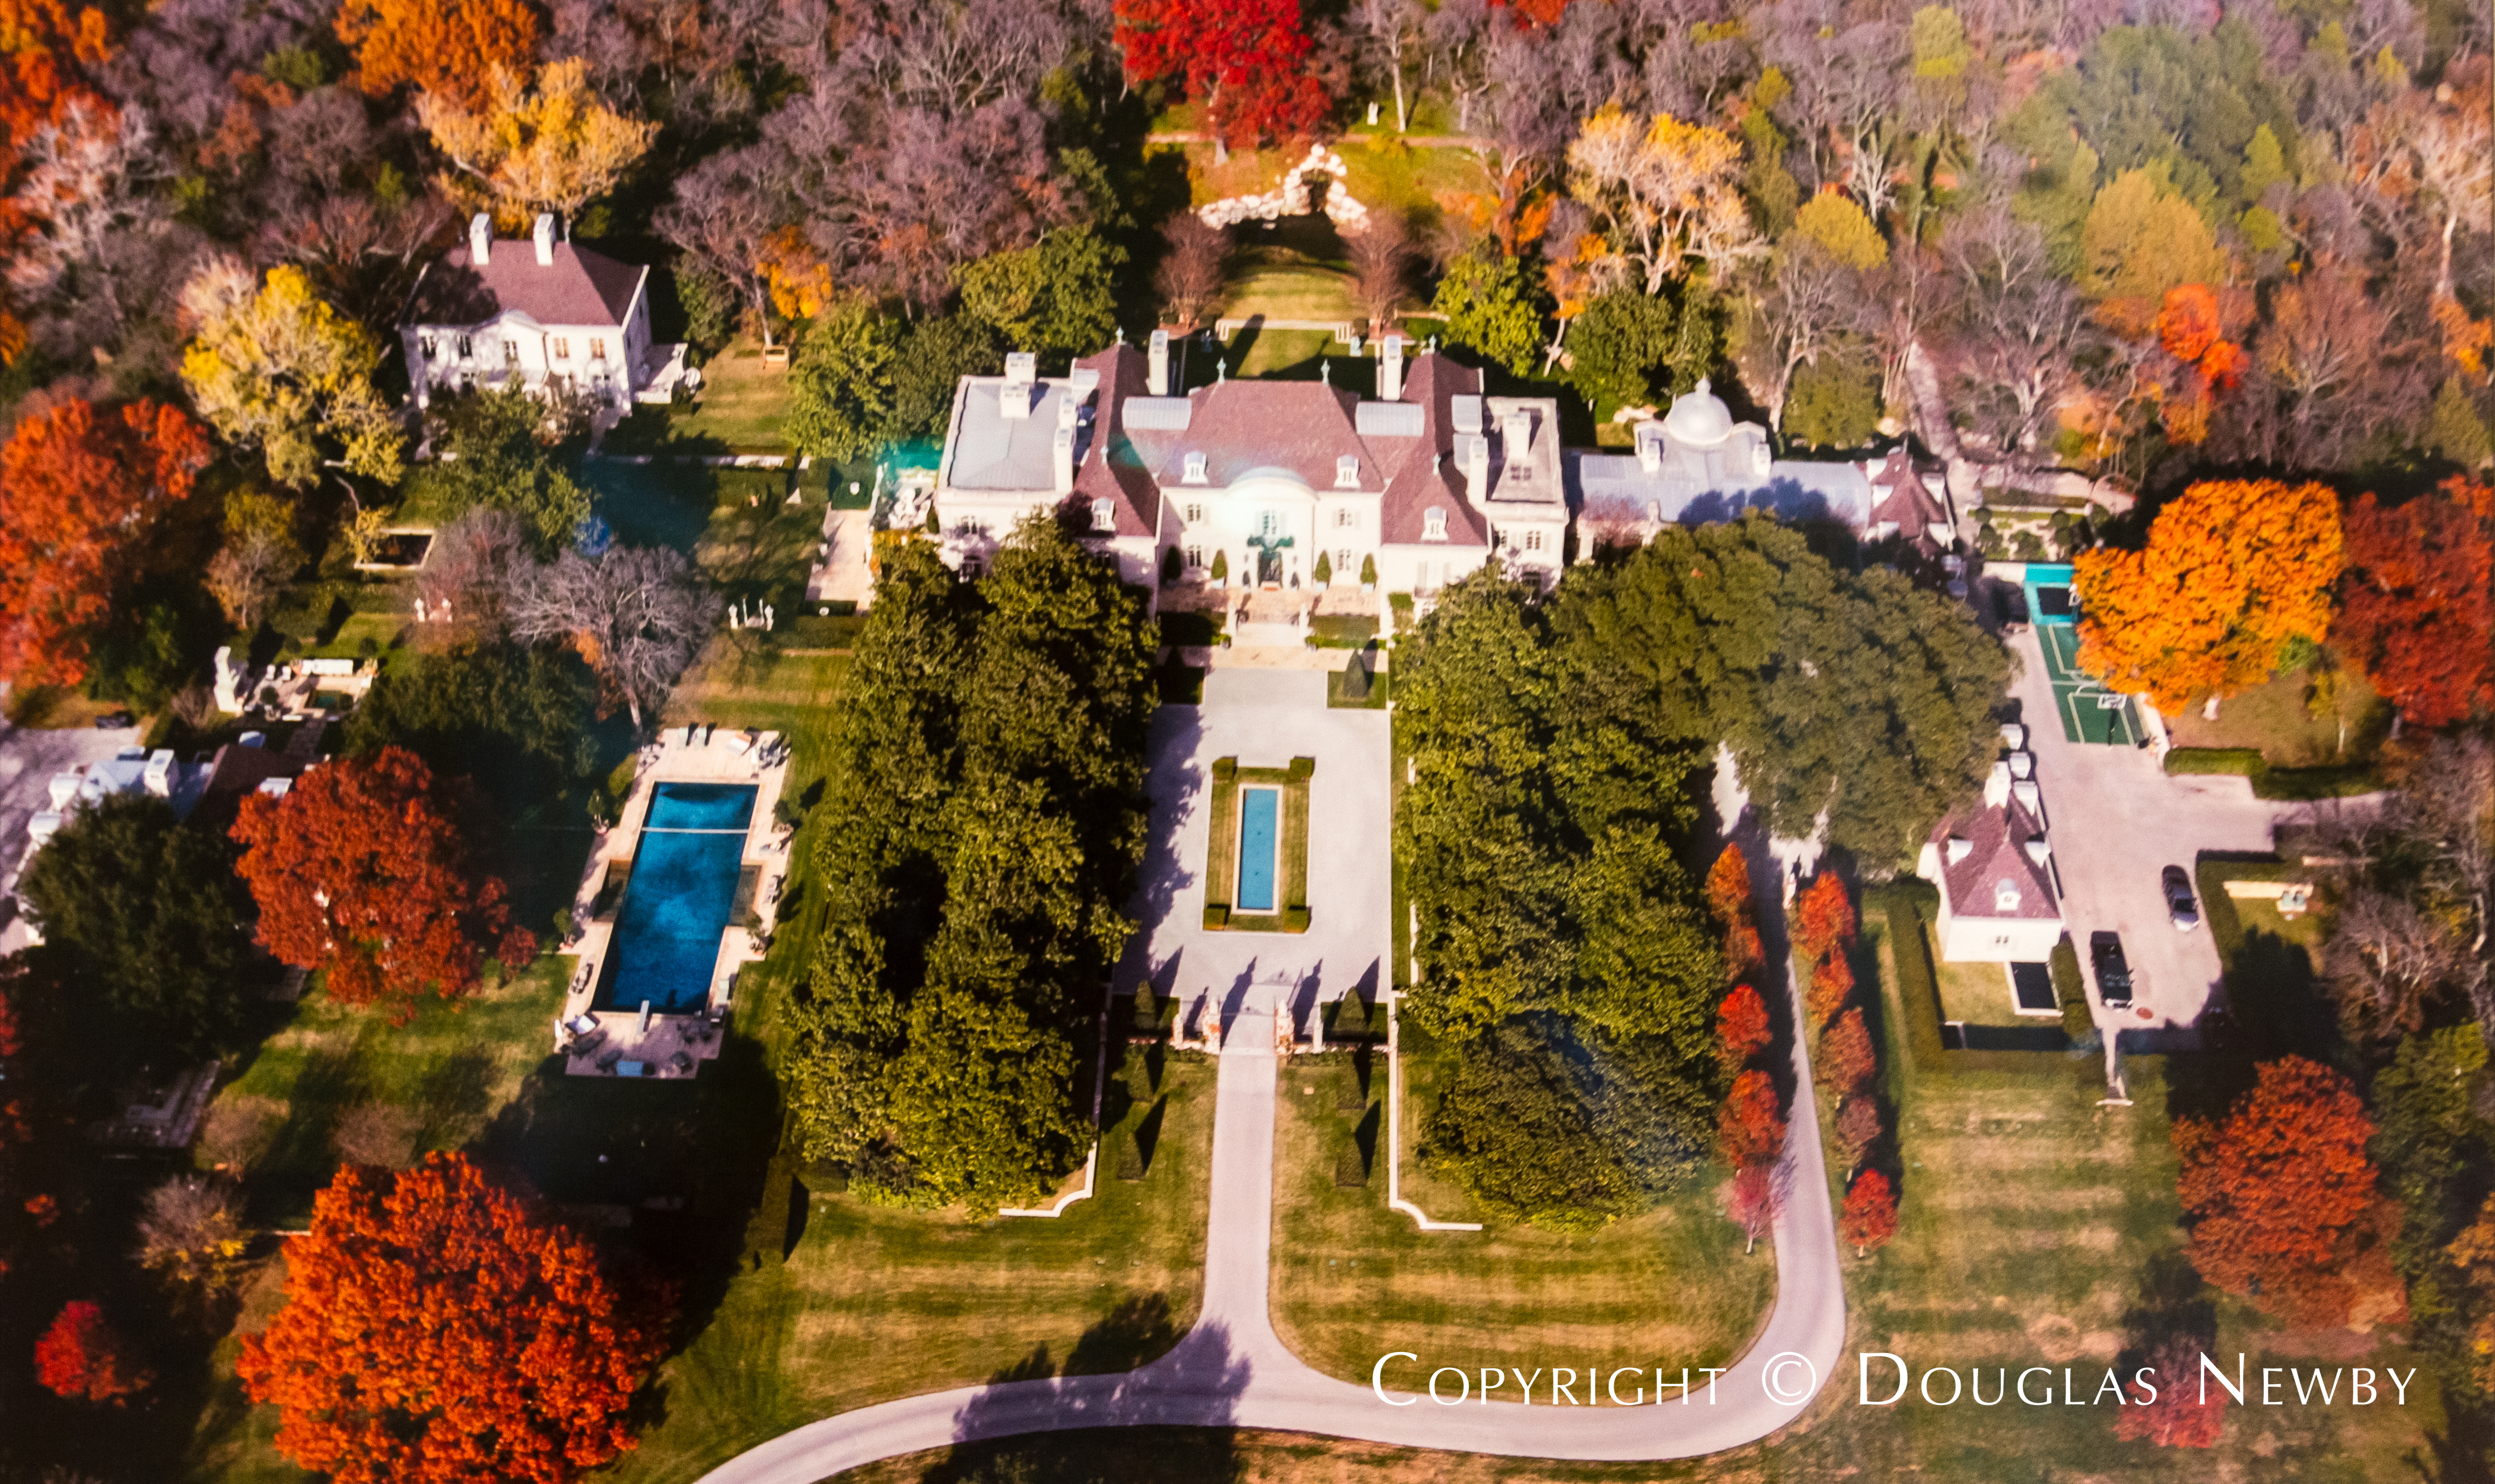 Arial View of the Crespi Hicks Estate Located in the Mayflower Estates Neighborhood